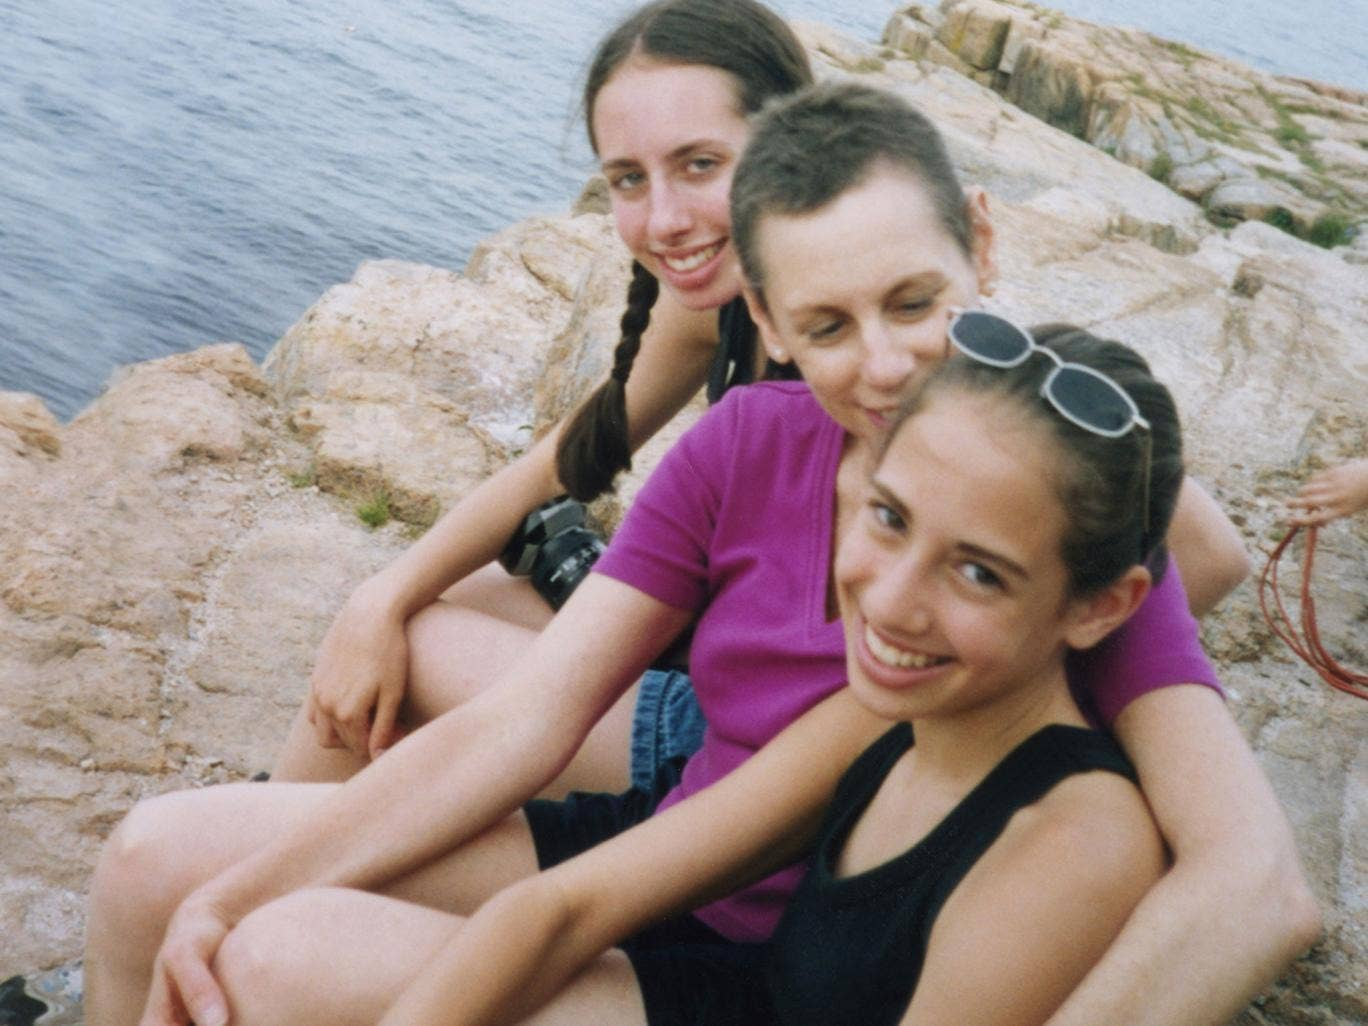 Hard times: Marsha Silver during her treatment for cancer, in a family photo with daughters Maya (left) and Daniela